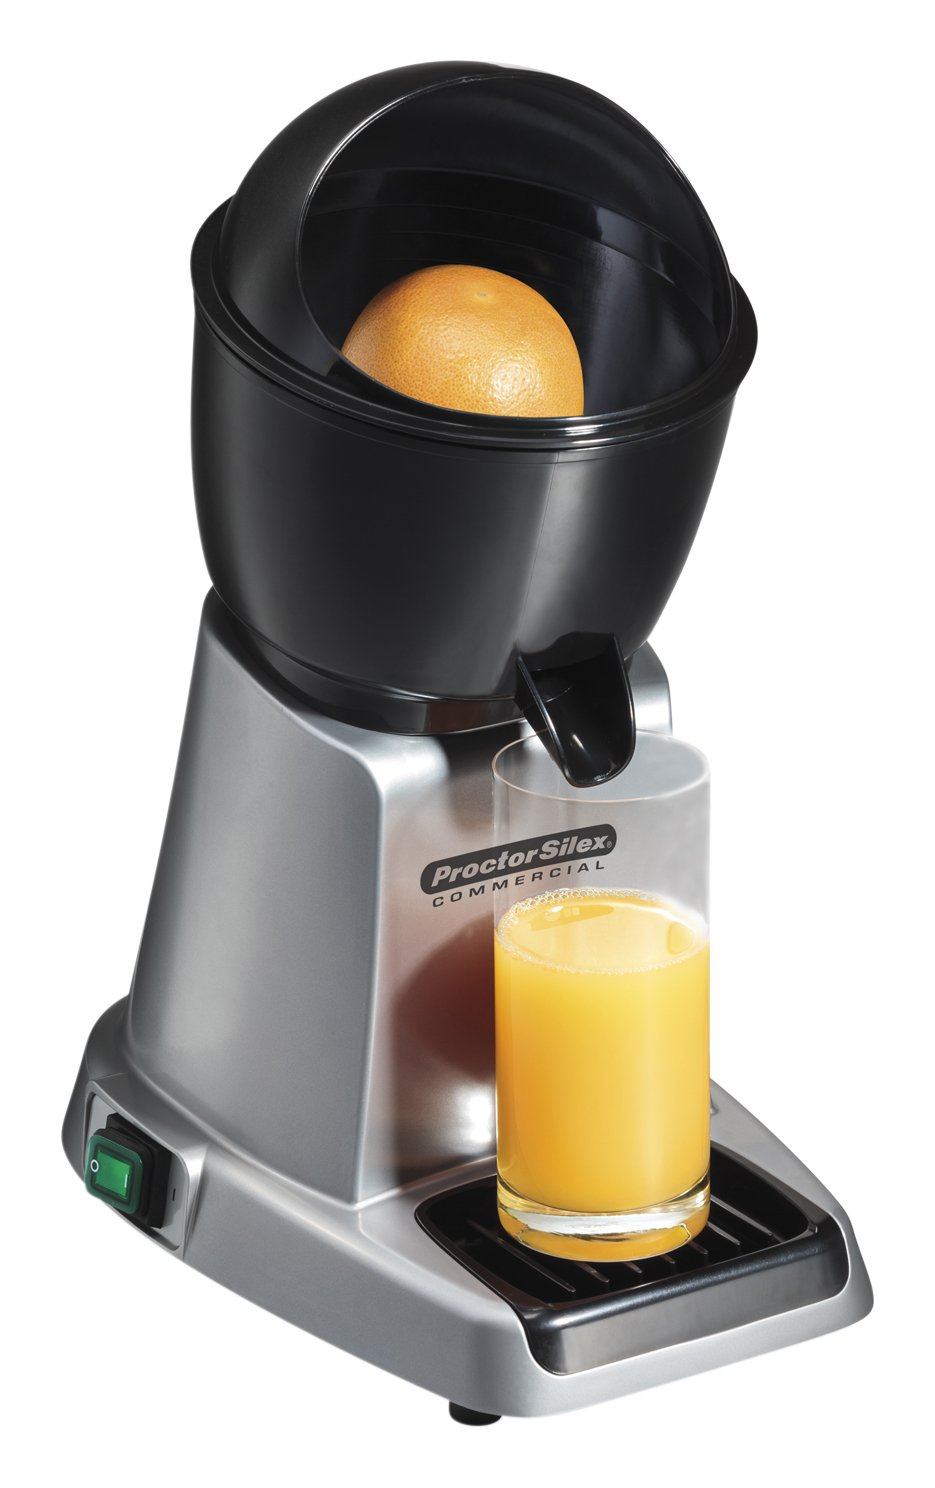 Proctor Silex Commercial 66900 Electric Citrus Juicer, 3 Reamer Sizes for Oranges, Lemons, Limes and Grapefruits, Removable Bowl, Strainer, Splashguard, Drip Tray, Black Grey